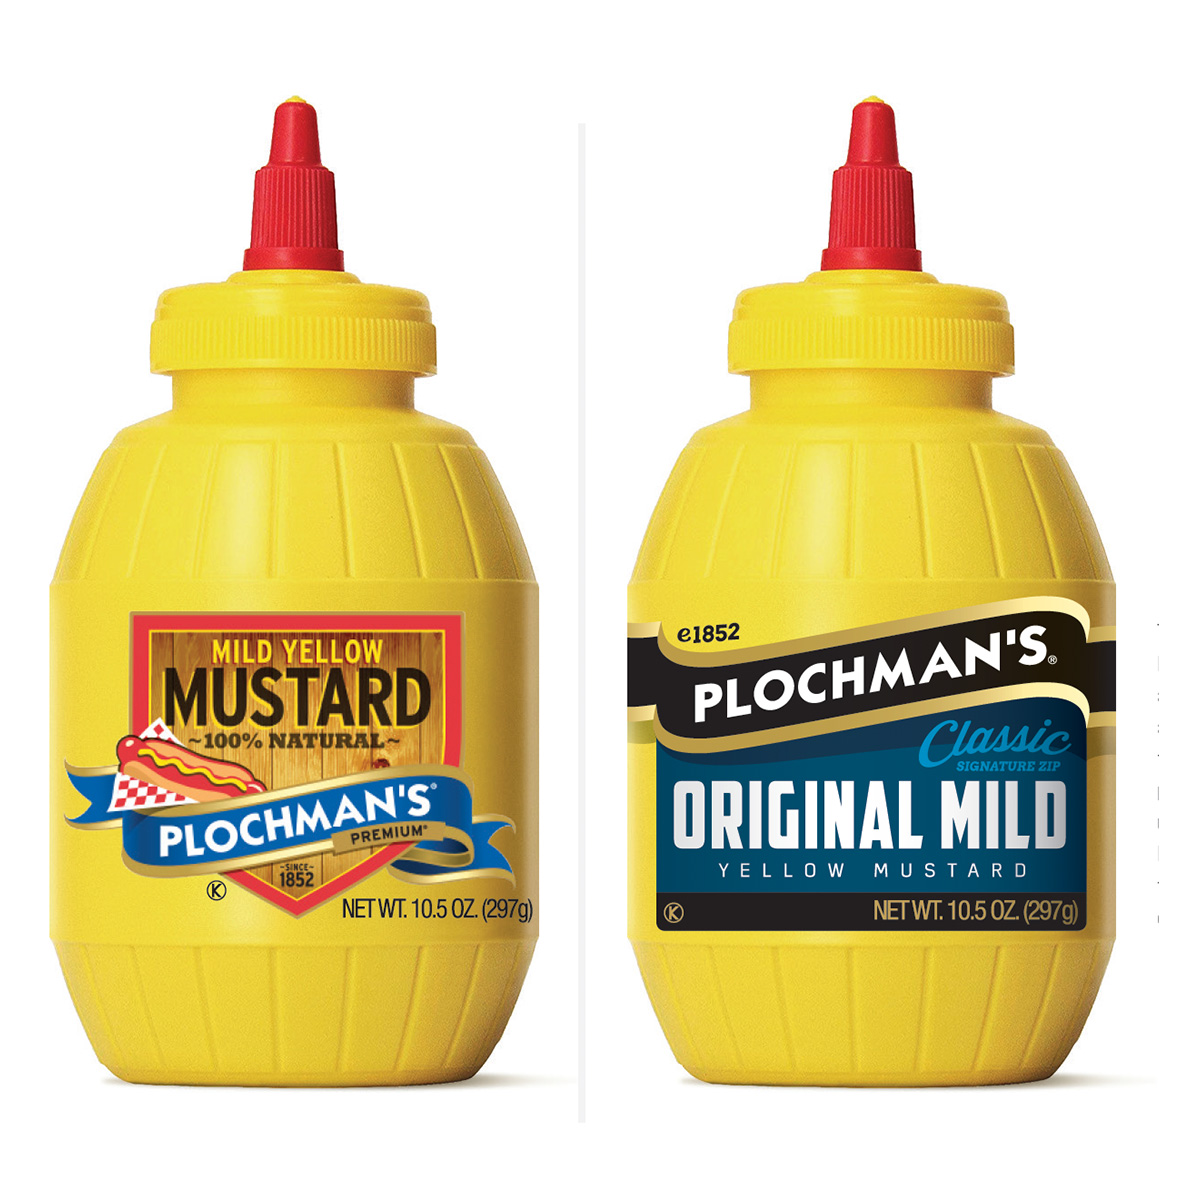 Plochman's yellow mustard bottles with old and new branding